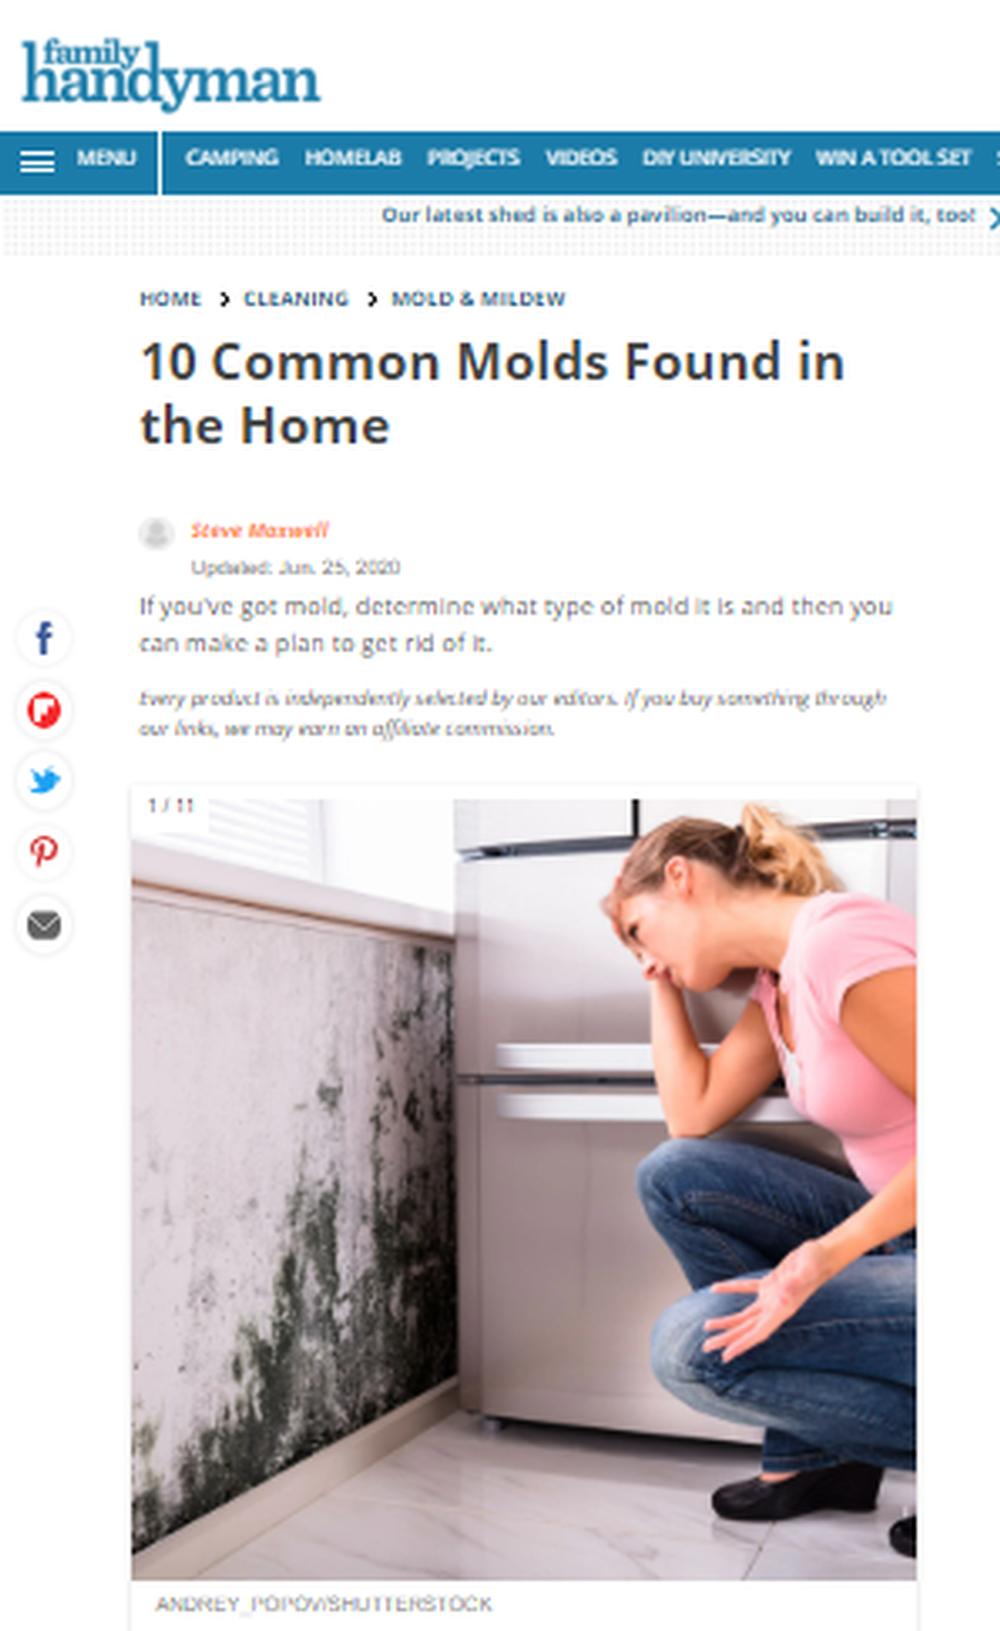 10_Common_Molds_Found_in_the_Home_The_Family_Handyman.png